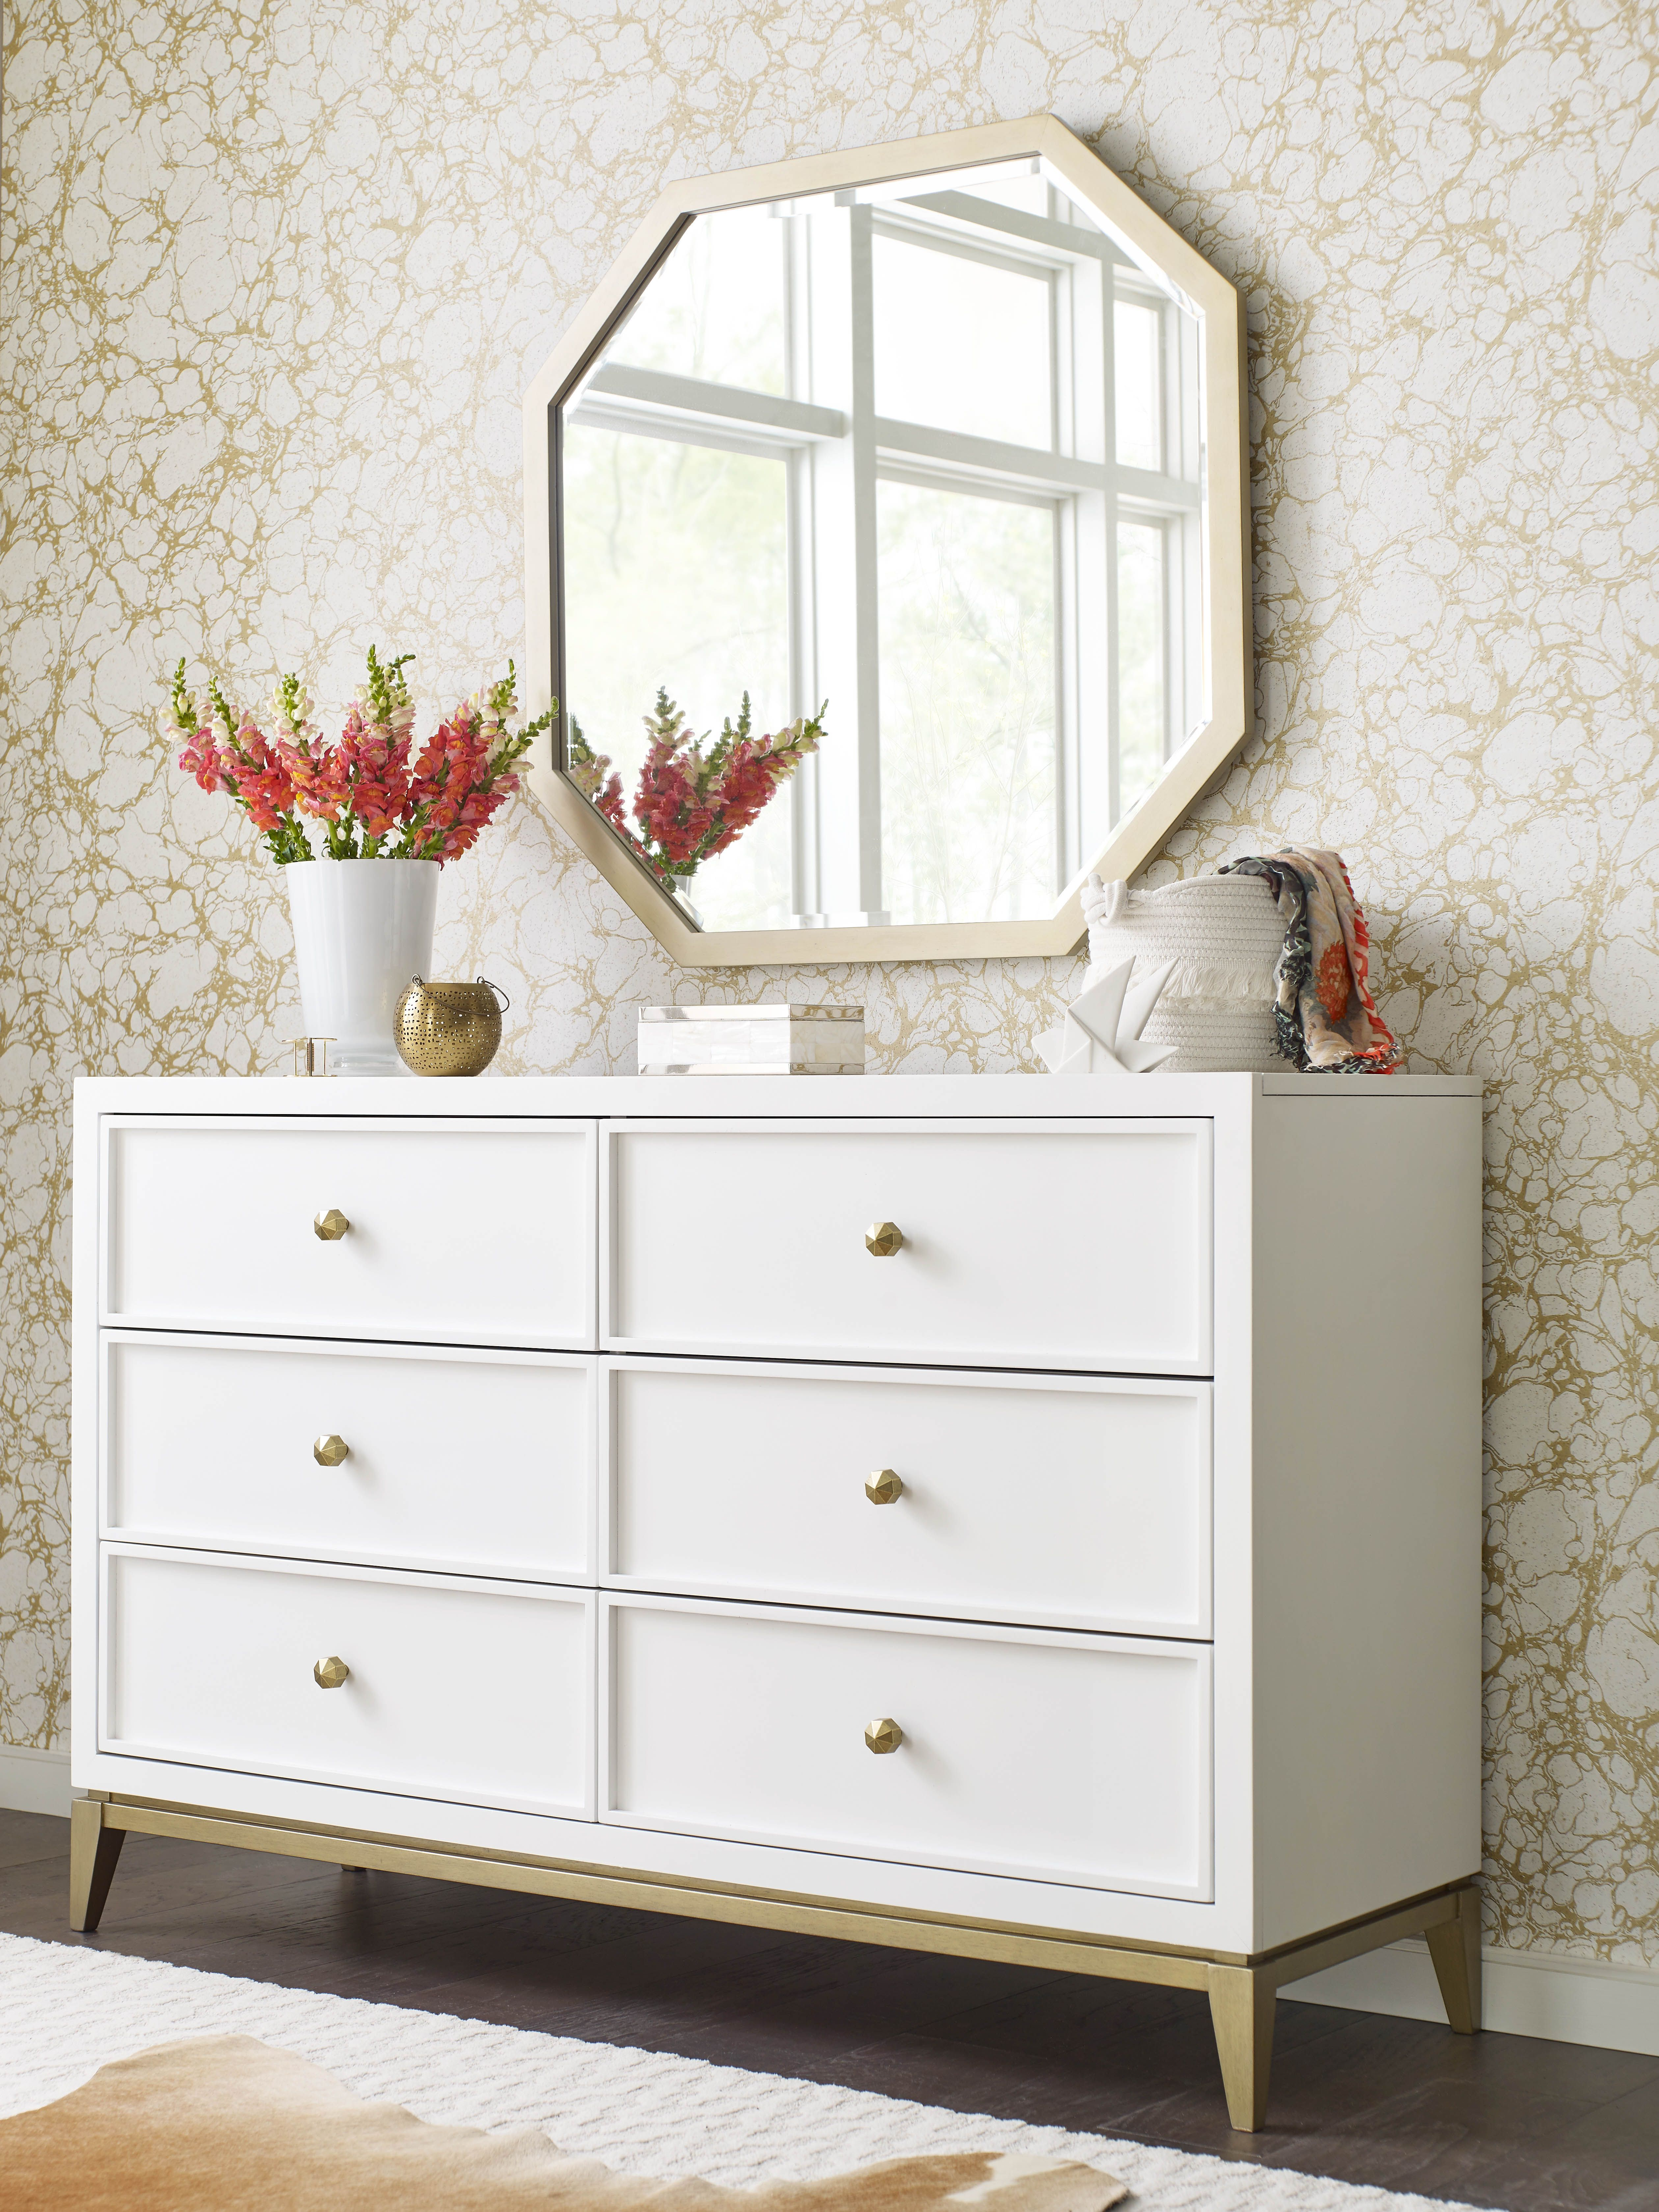 dressers pottery find hero extra campaign gemma goods kids dresser wide barn copycatchic home daily